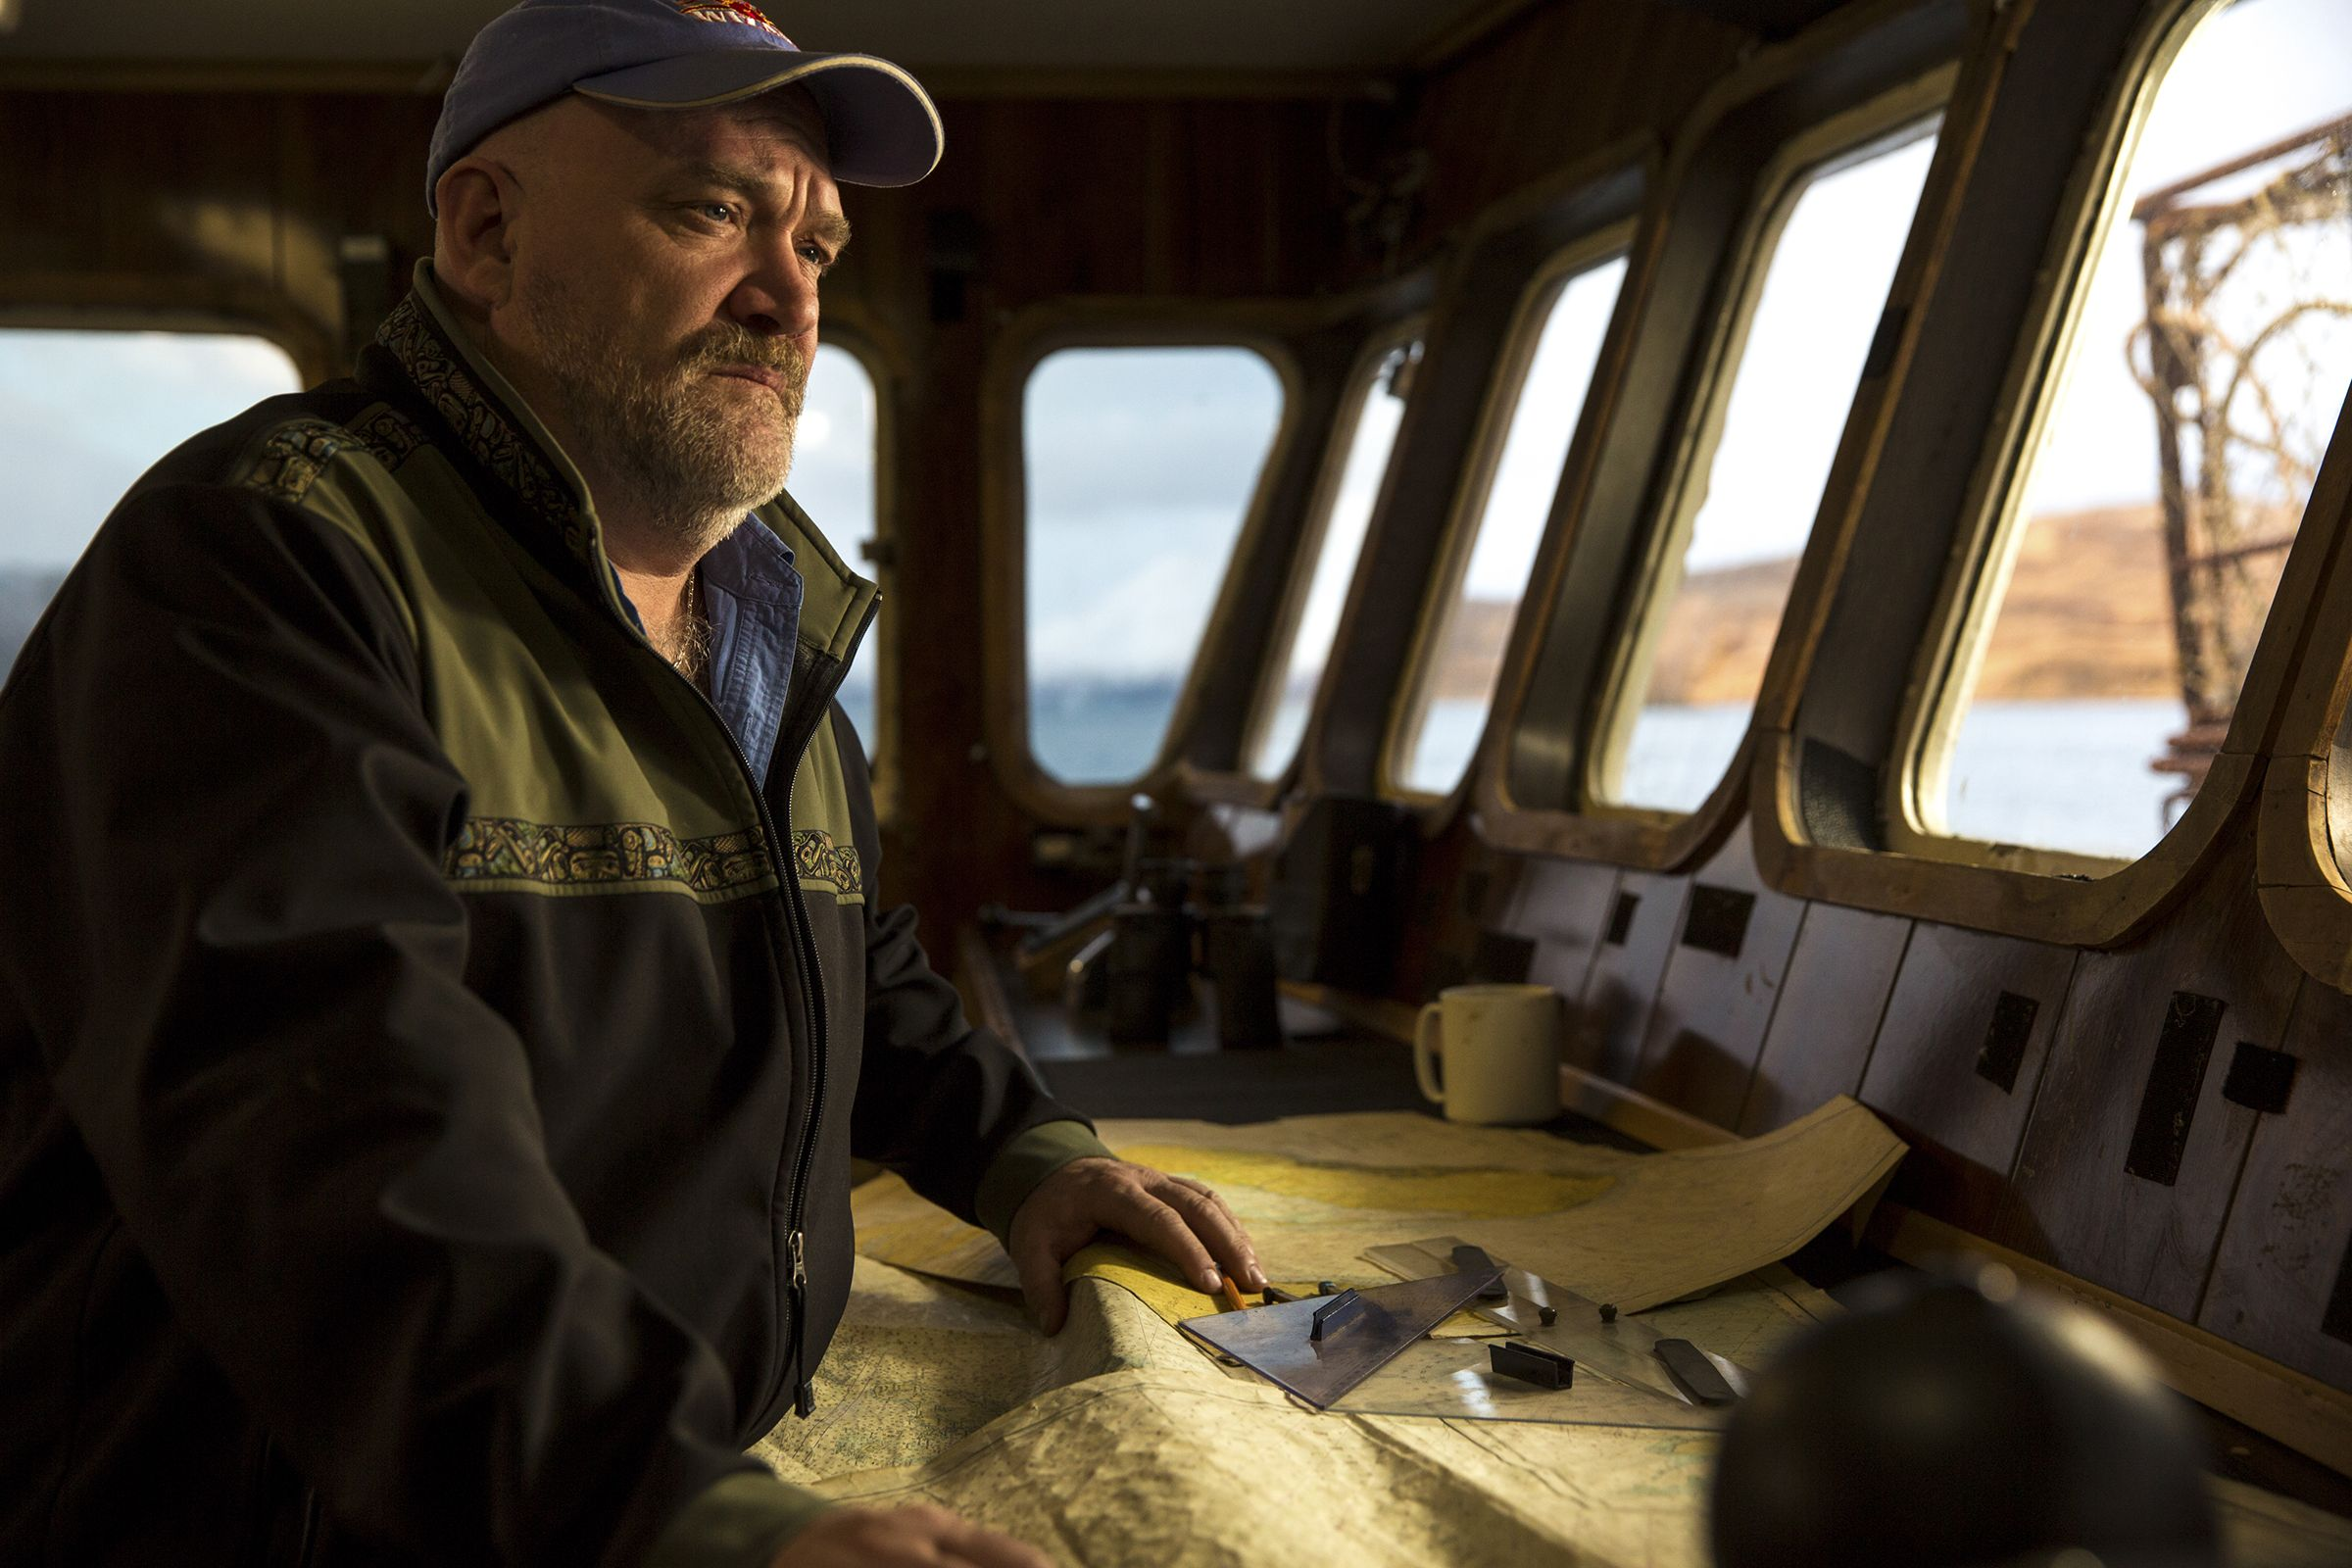 'Deadliest Catch' Captain Keith Colburn's Former Deck Boss and Mentor Has Died at 66